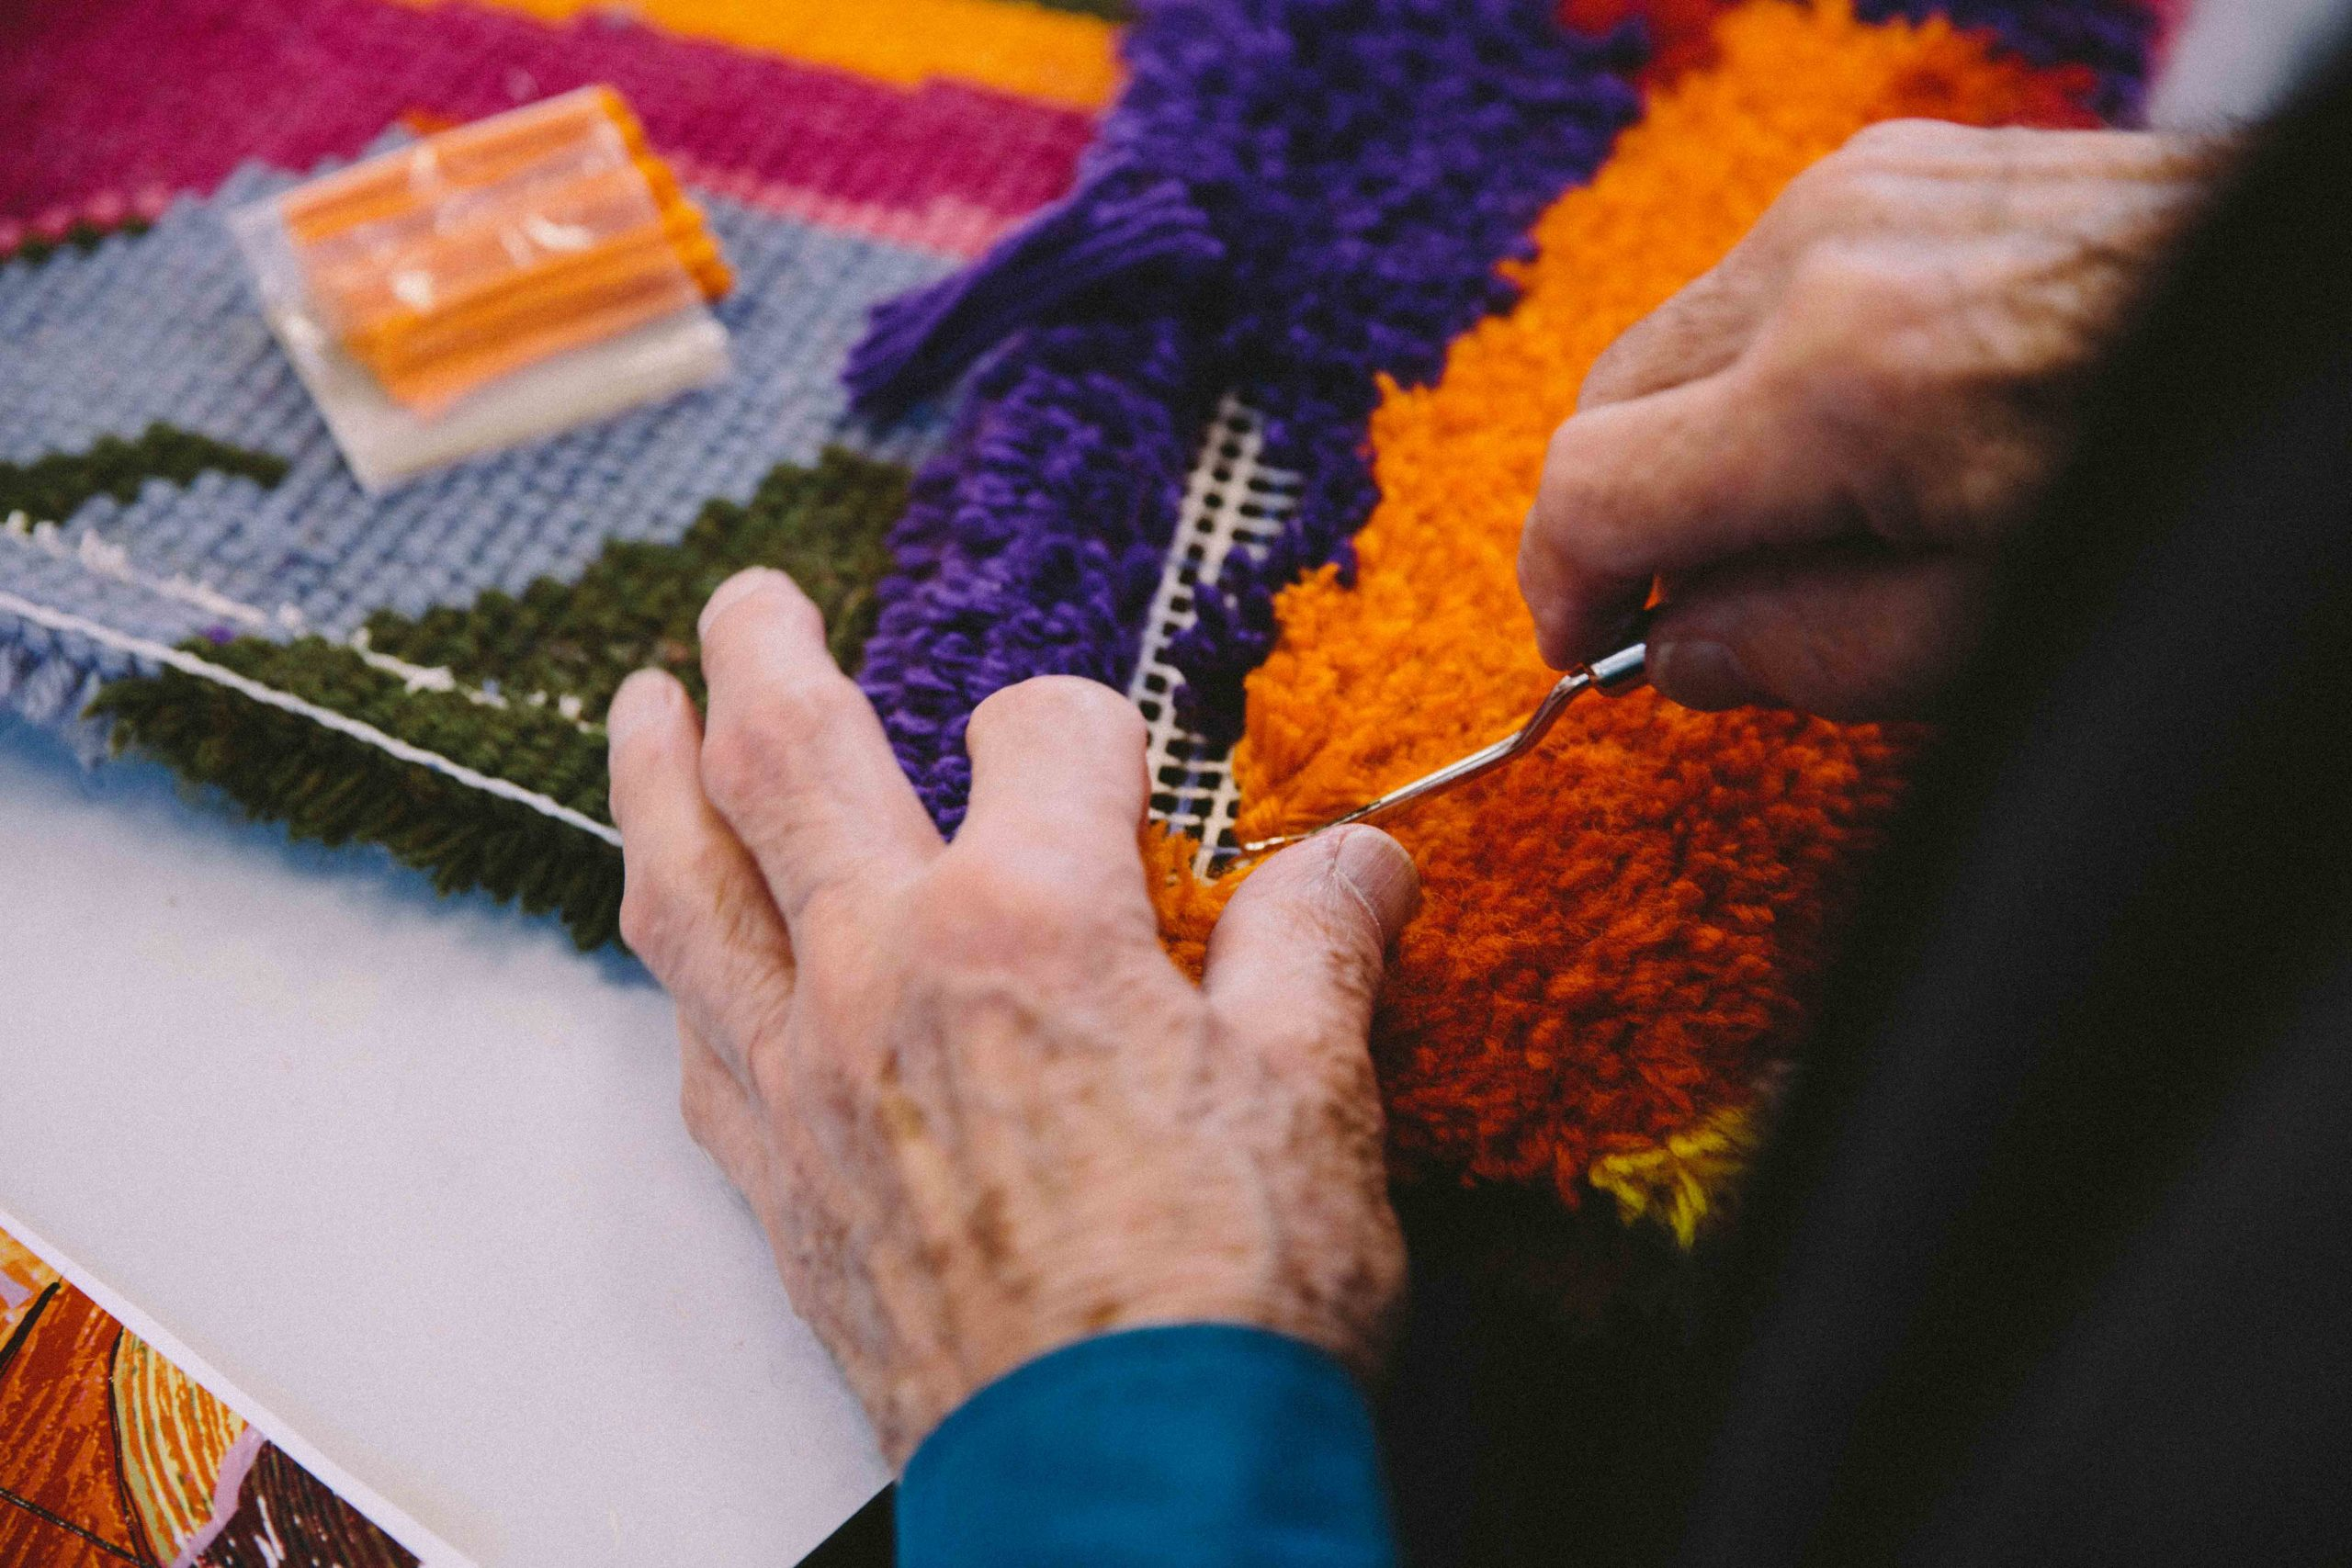 Keith Gretton's hands with colourful wool